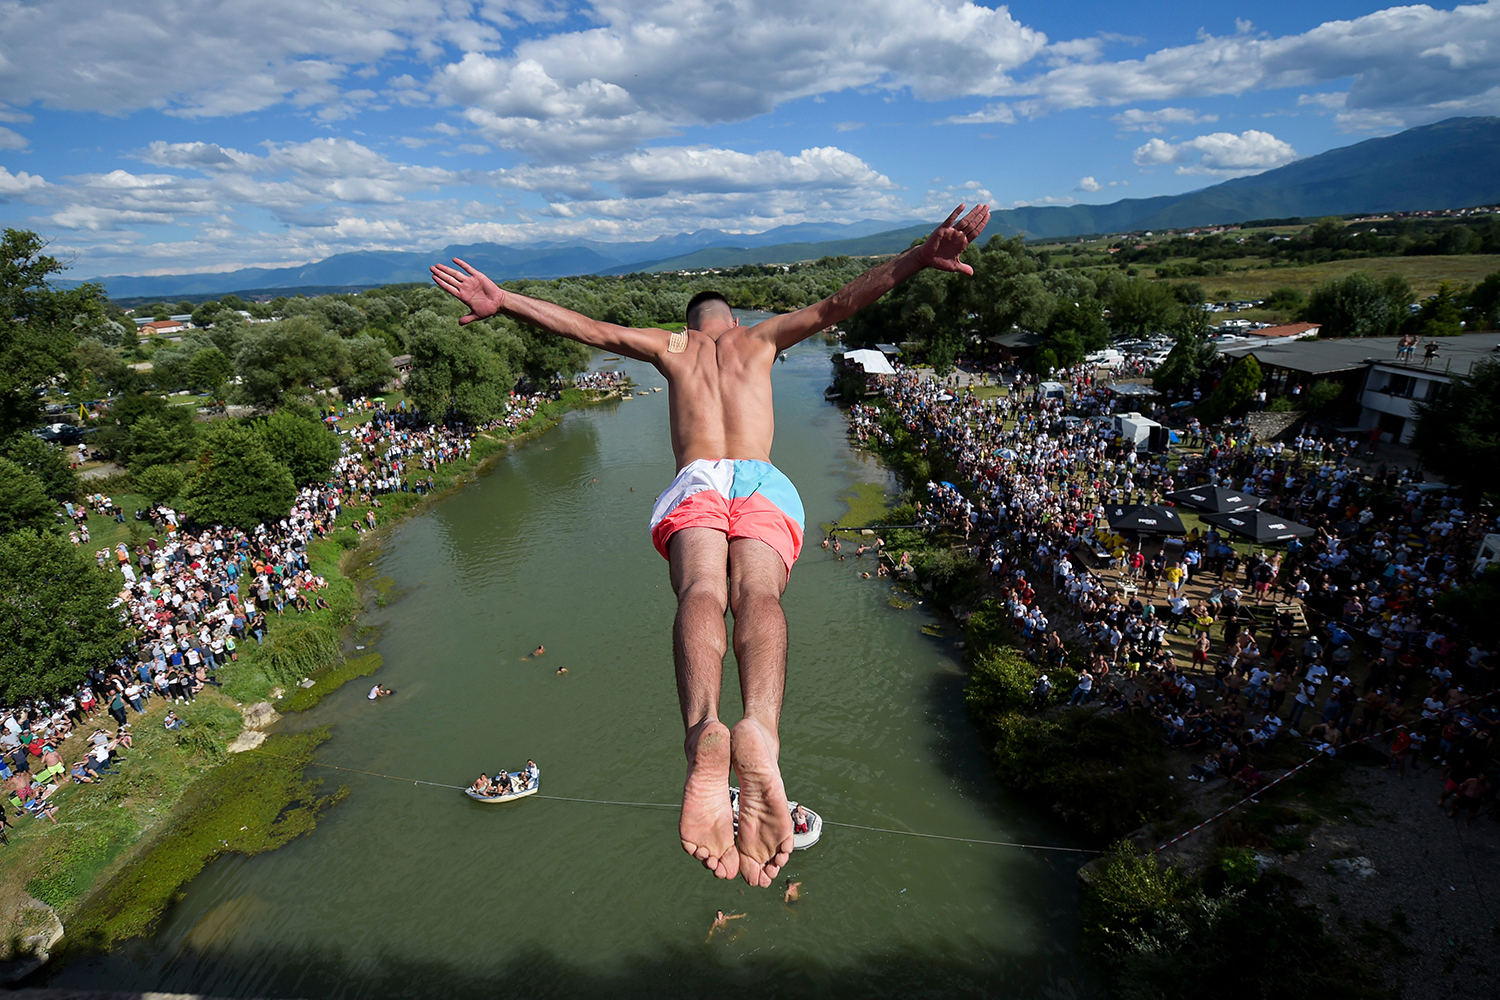 A diver jumps from the 72-foot-high Fshajt Bridge, or Sacred Bridge, near the town of Gjakova, Kosovo, on July 19 as sign of protest after police canceled the 70th annual high diving competition because spectators failed to follow social distancing rules. ARMEND NIMANI/AFP via Getty Images